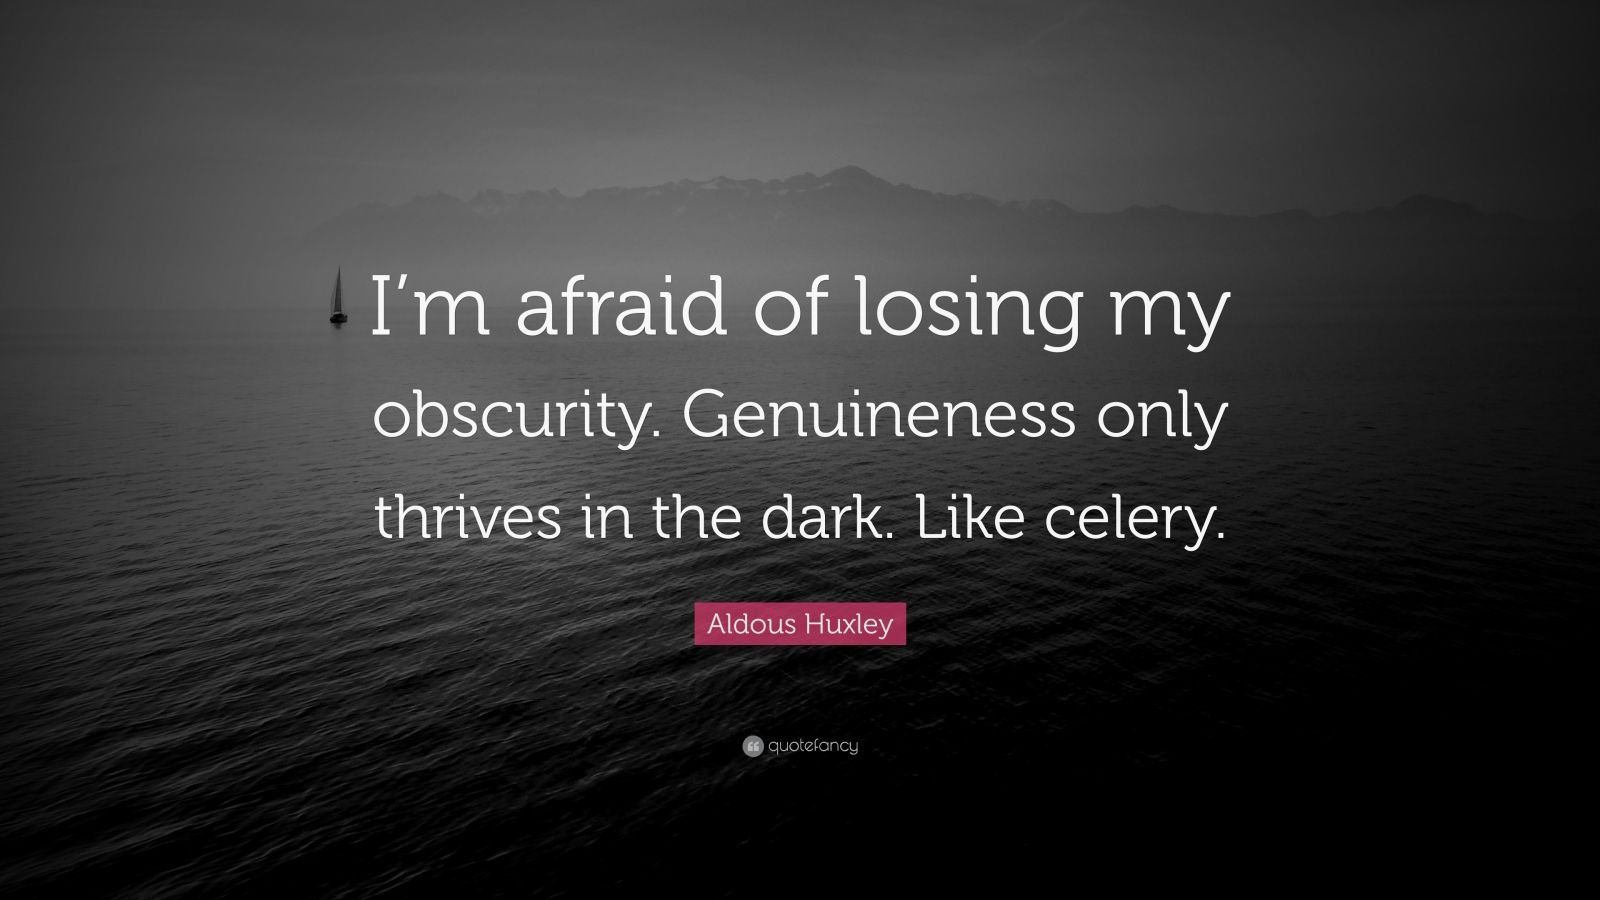 """Aldous Huxley Quote: """"I'm afraid of losing my obscurity. Genuineness only thrives in the dark. Like celery."""""""